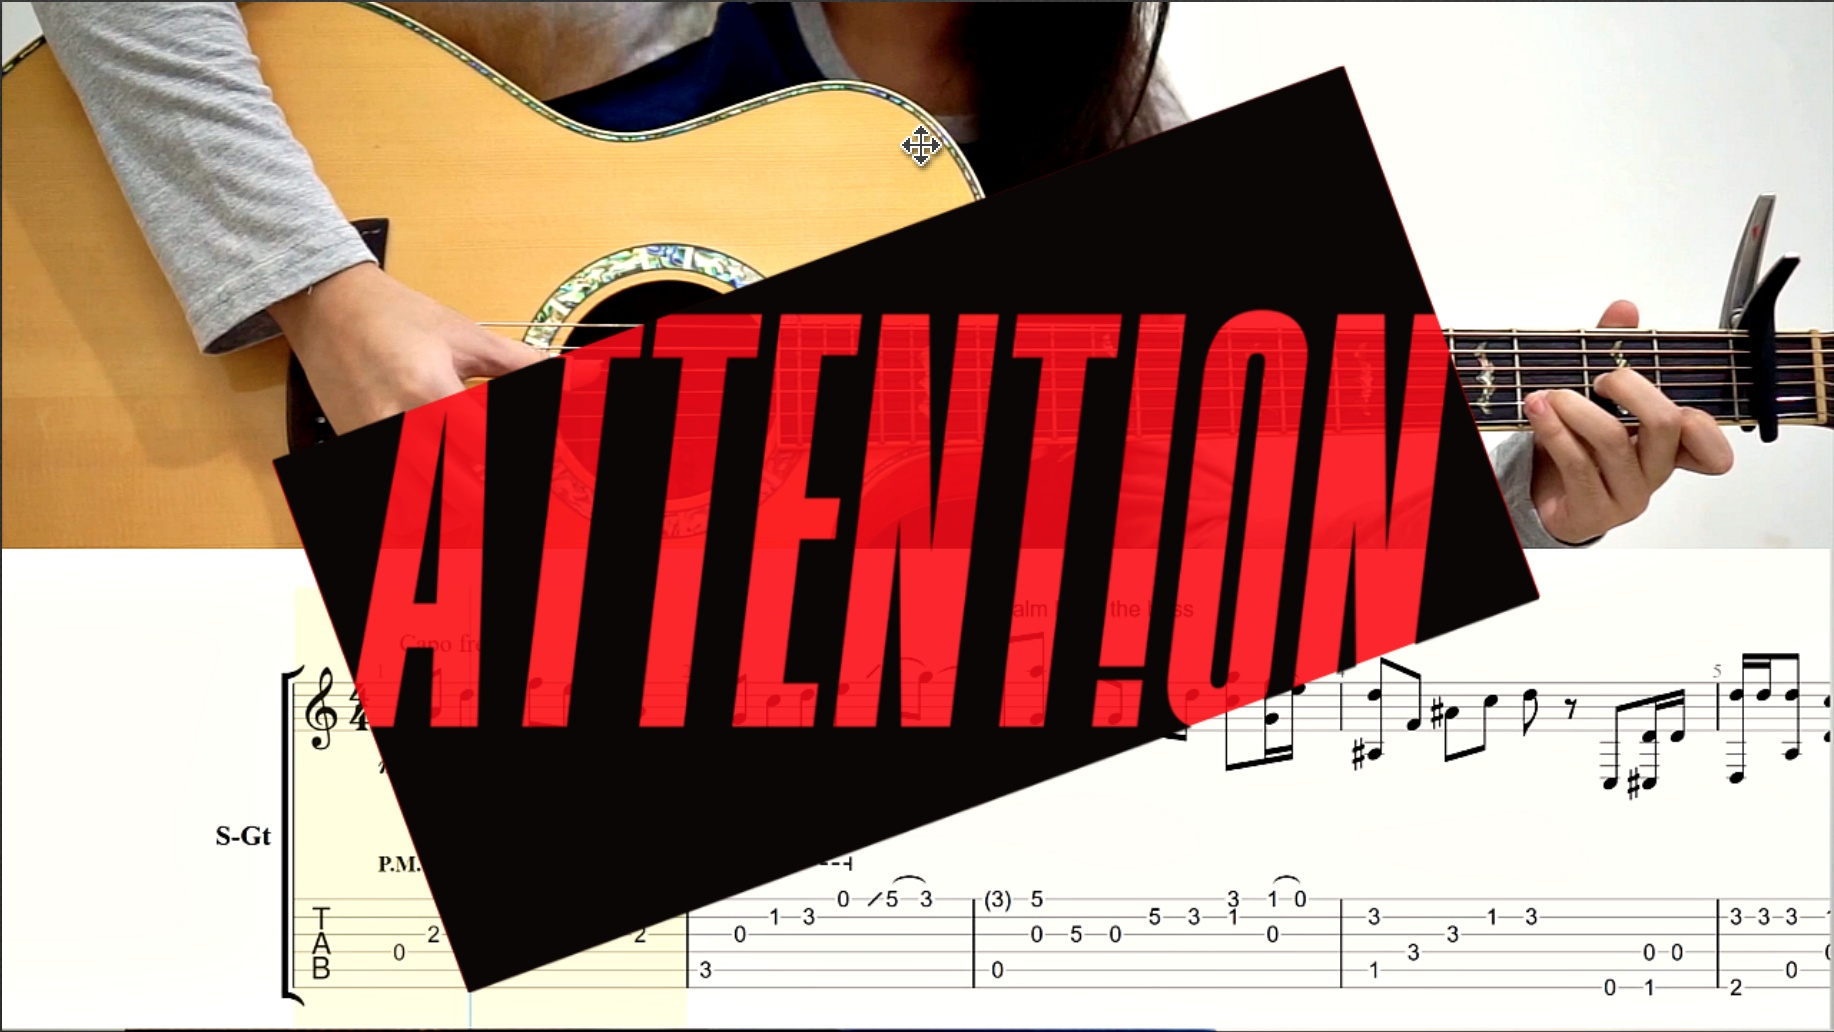 (Charlie Puth) Attention - Fingerstyle Guitar TABS [Guitar Pro 5]